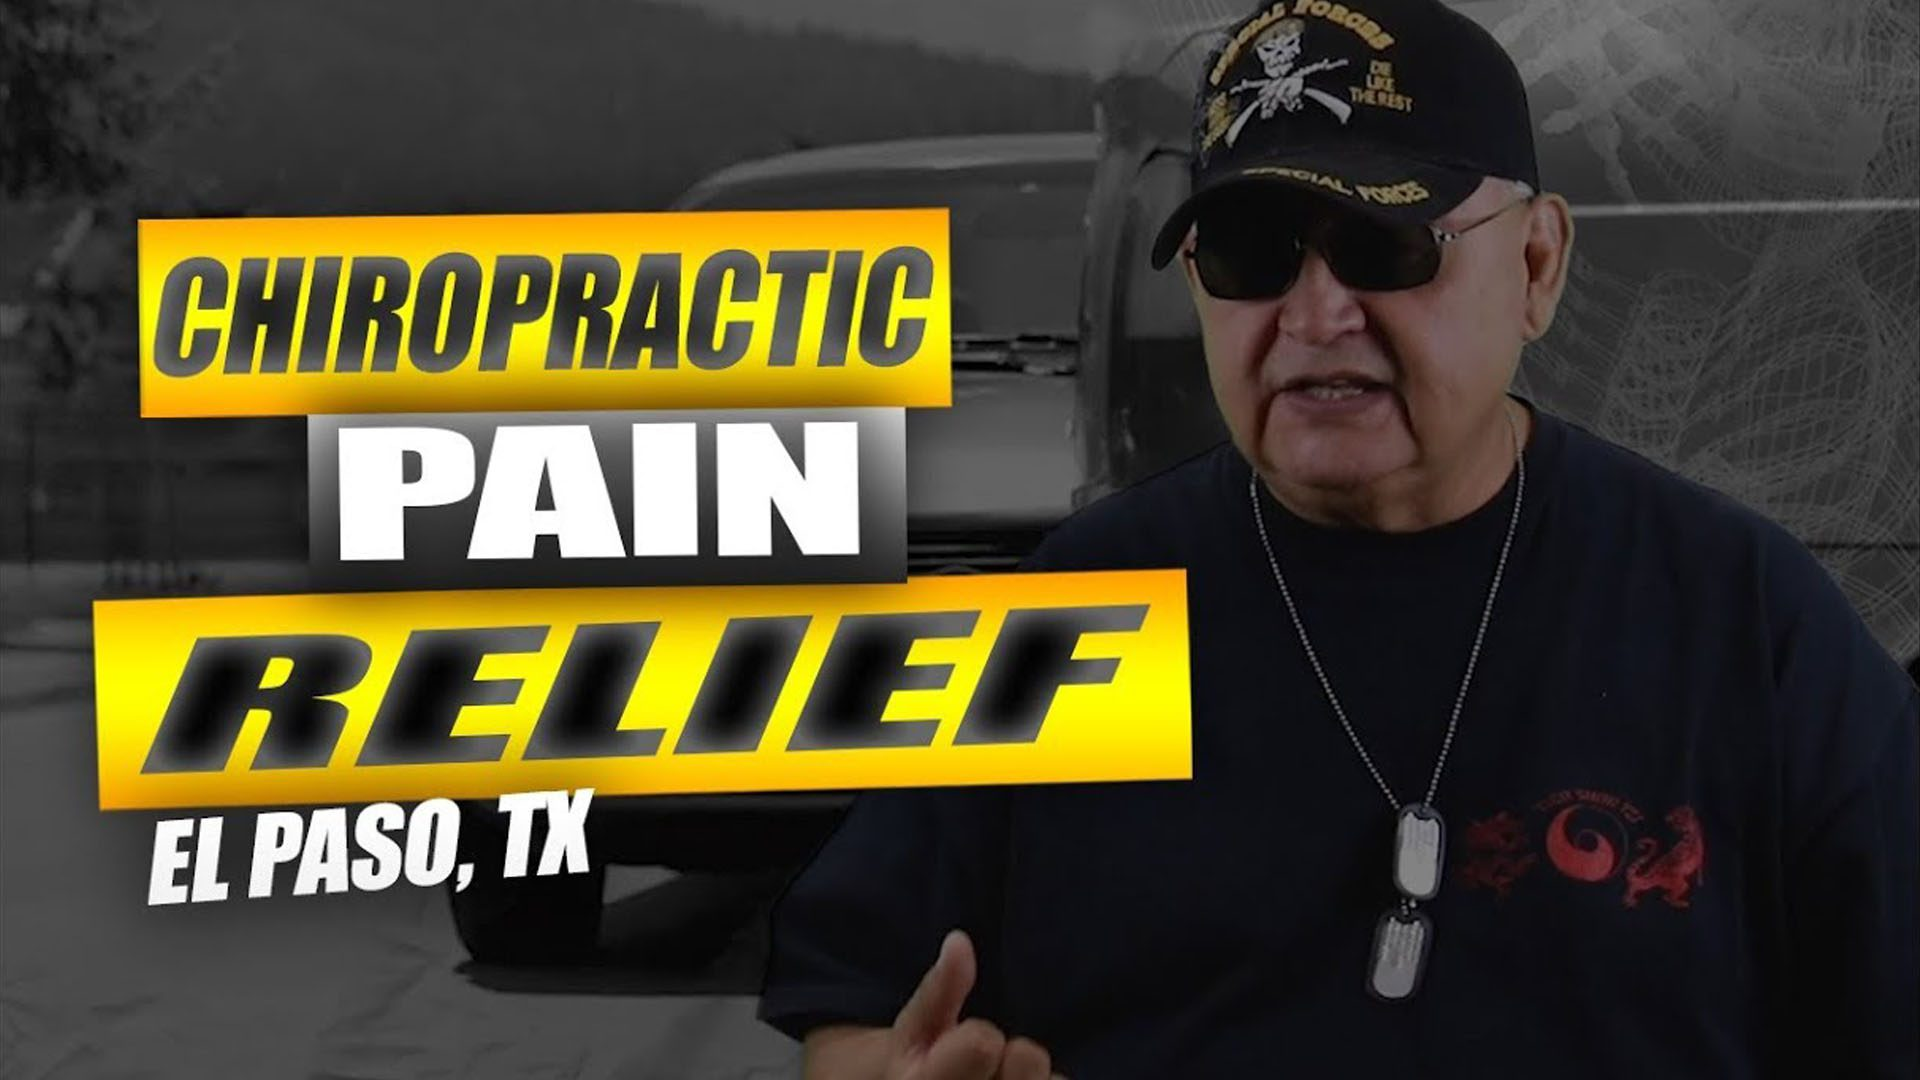 Chiropractic Pain Relief | Video